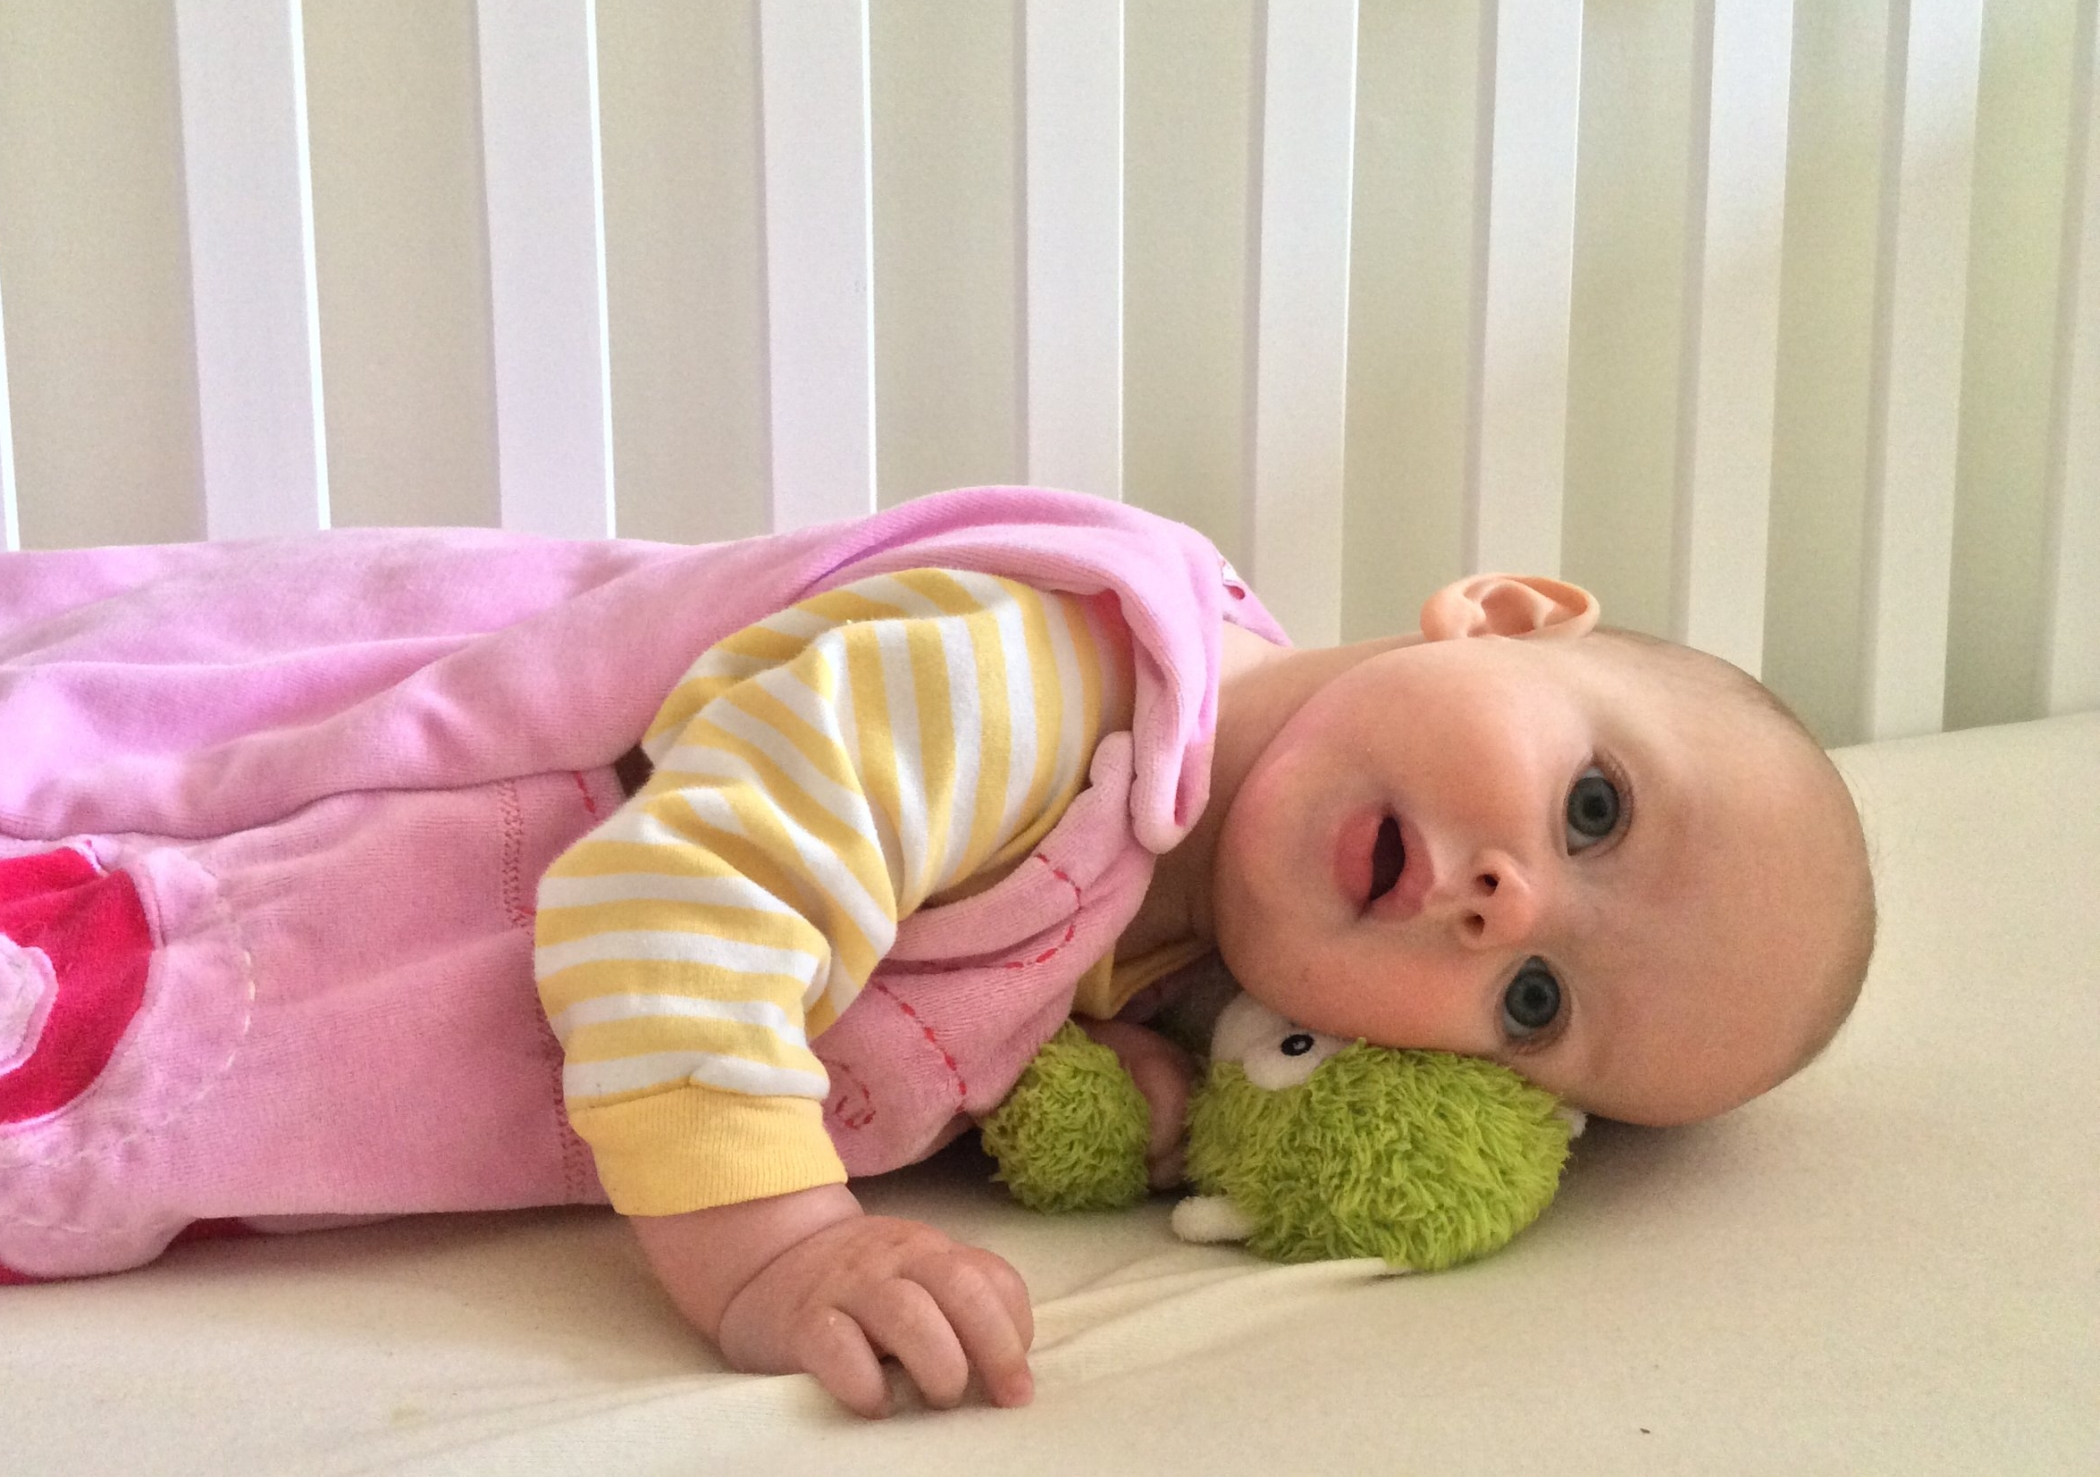 The best room temperature for your baby's sleep is between 16 and 21 degrees celsius.